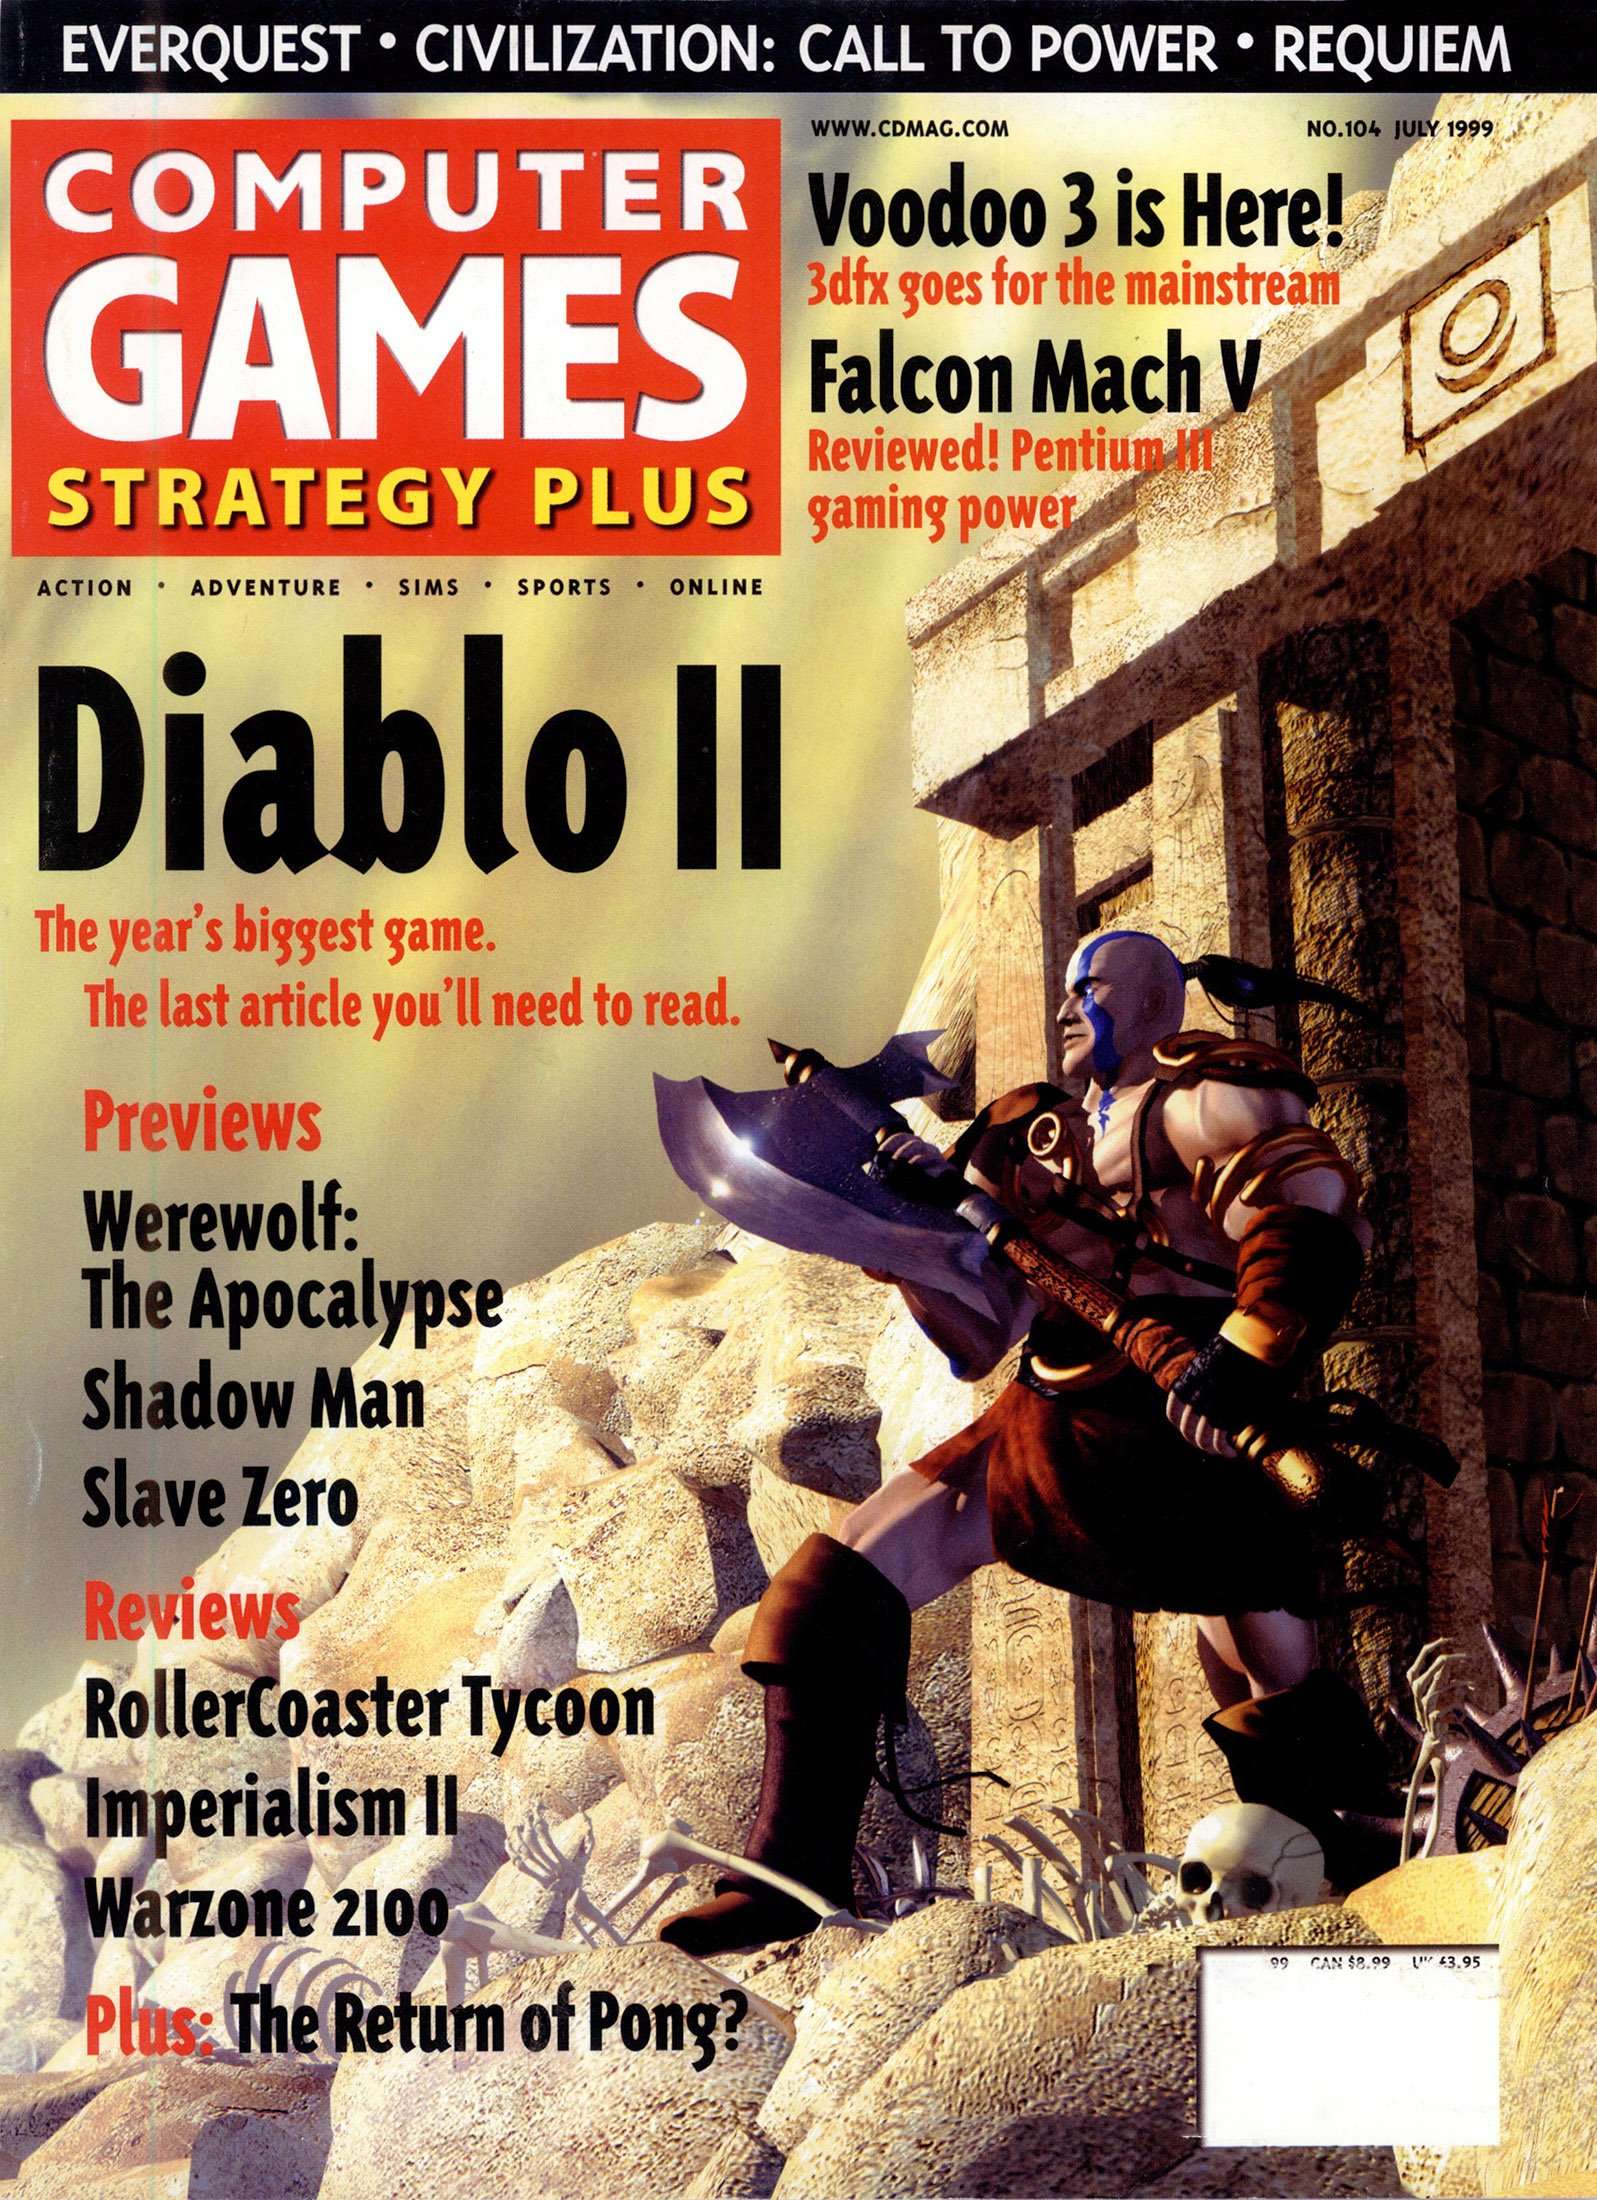 Computer Games Strategy Plus Issue 104 (July 1999)